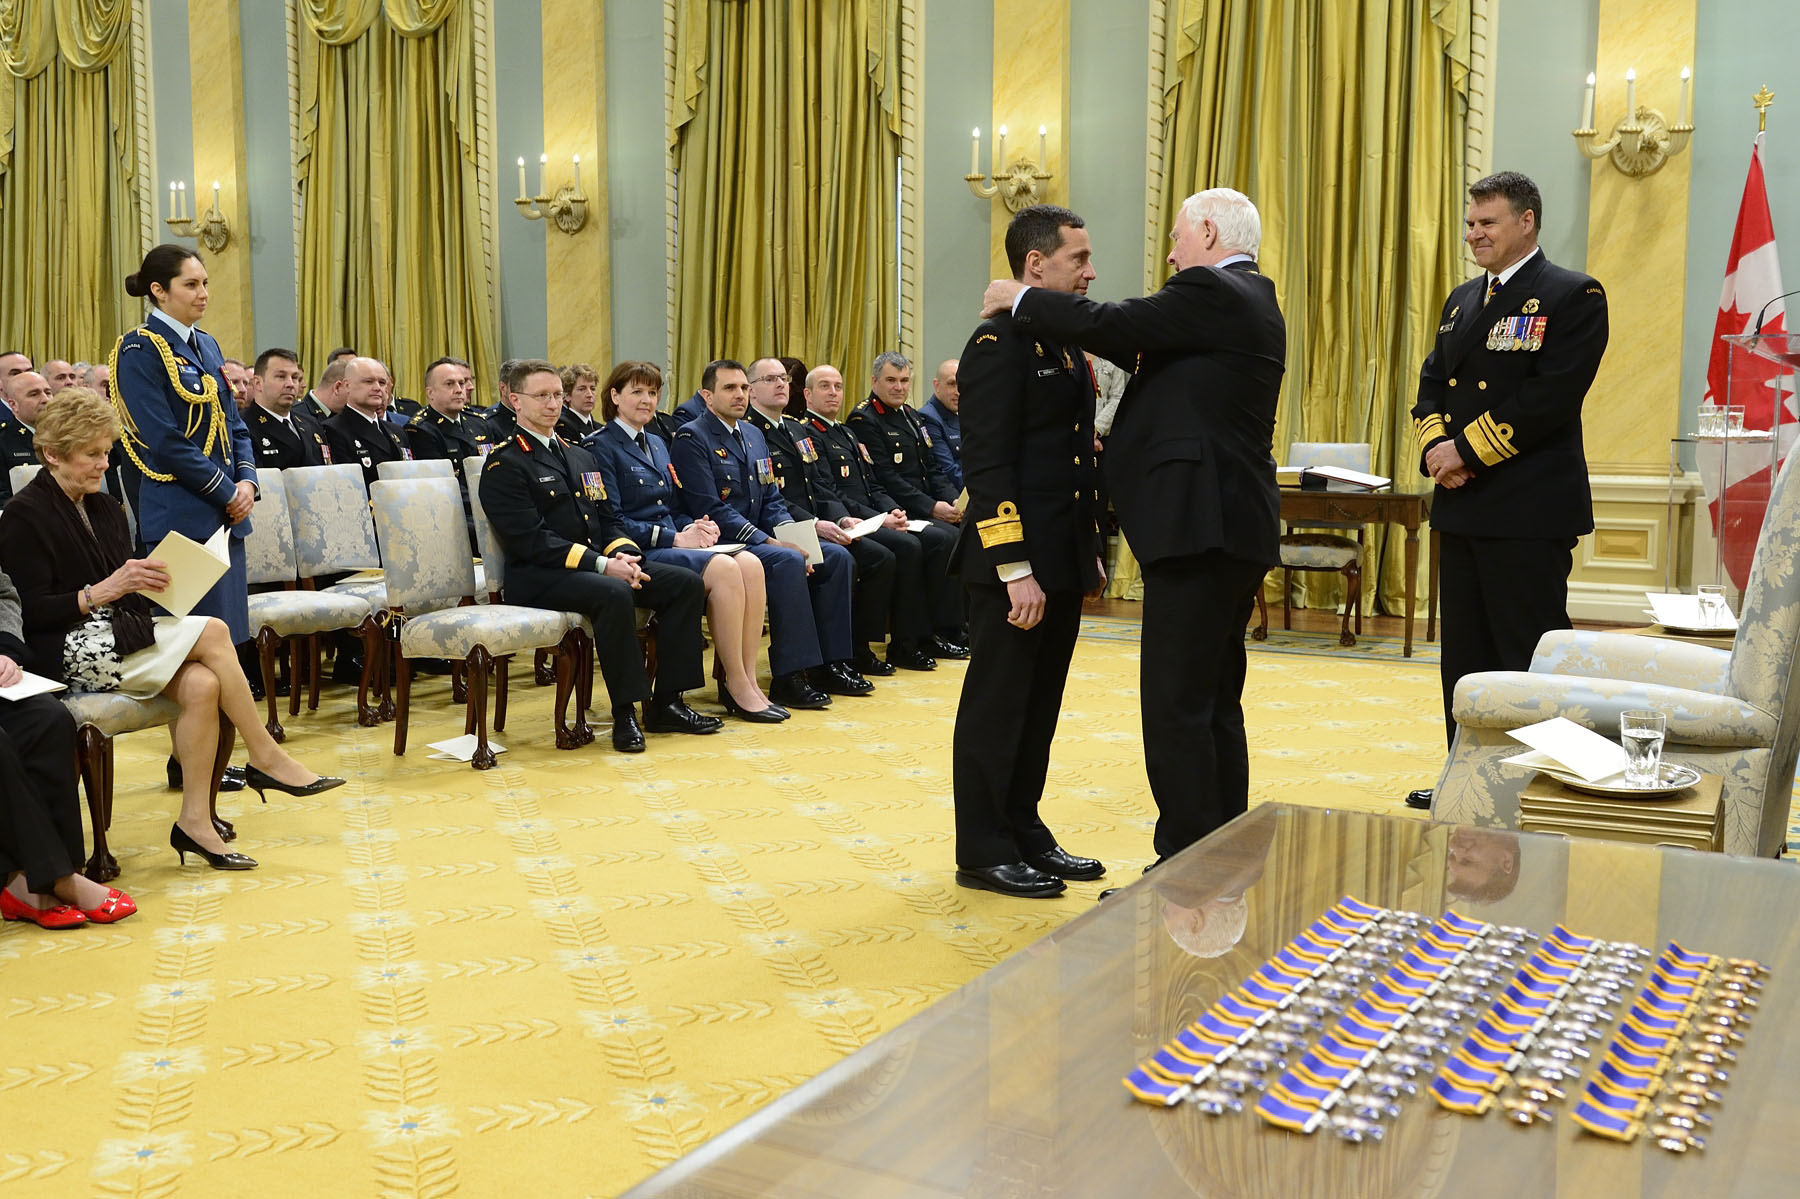 His Excellency presented the Order of Military Merit at the Commander level (C.M.M.) to Rear-Admiral Joseph Gilles Pierre Couturier, C.M.M., C.D., from the Office of the Commander, Royal Canadian Navy in Ottawa, Ontario.